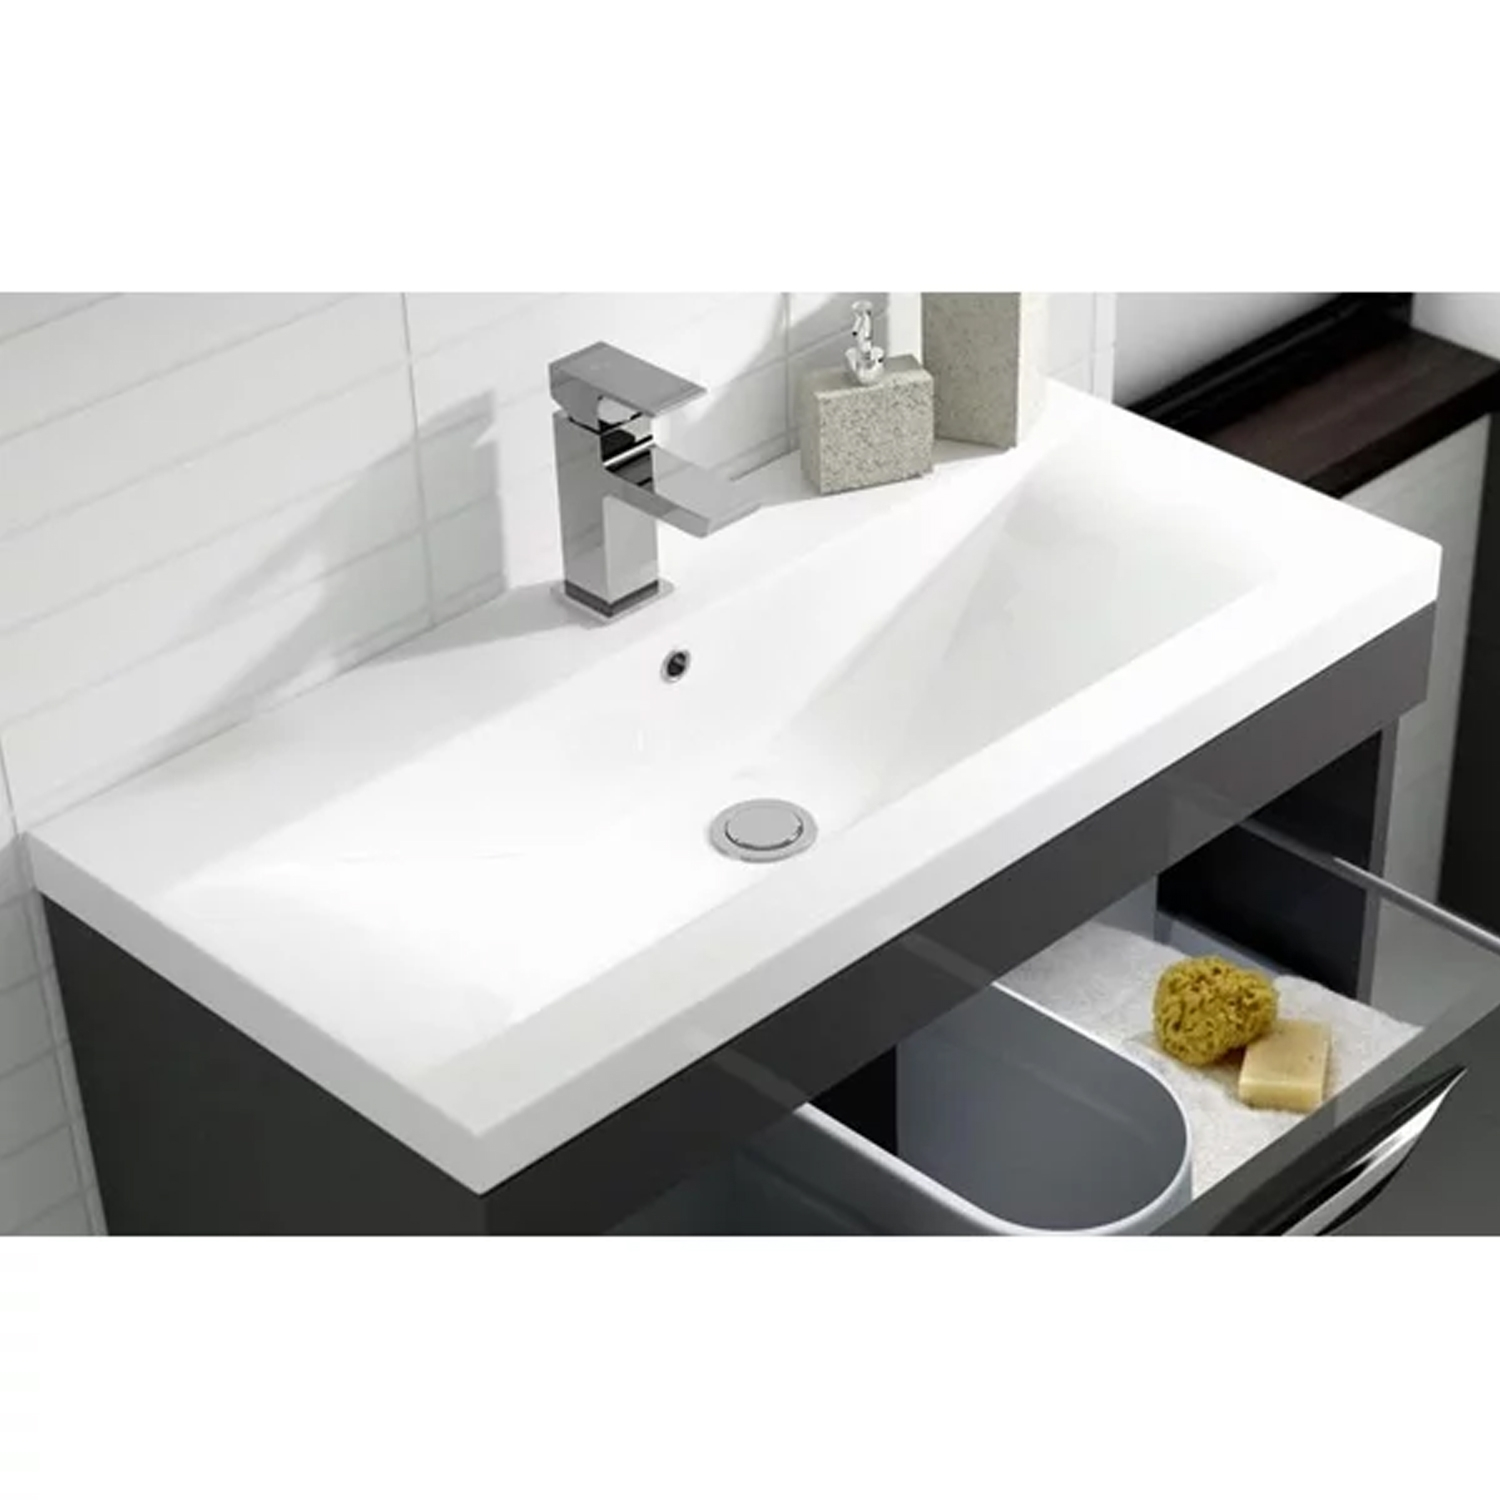 Hudson Reed Memoir Floor Standing Vanity Unit with Mid-Edged Basin 1 800mm W Gloss Grey 1 Tap Hole